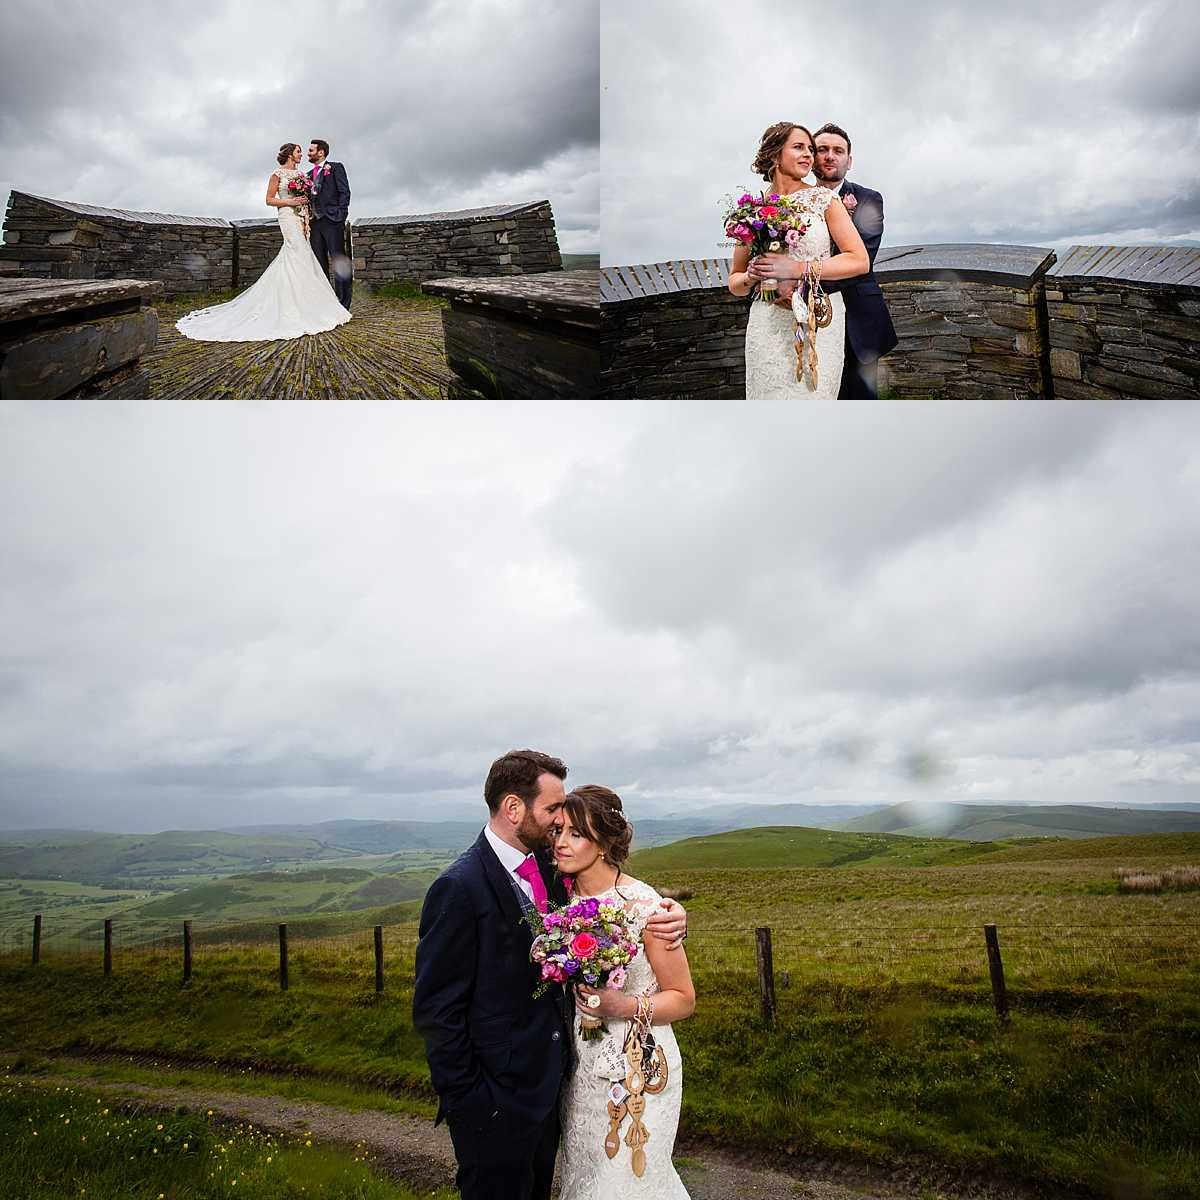 bride and groom nuzzled in together up in the welsh hills with lovely mountain views in the background